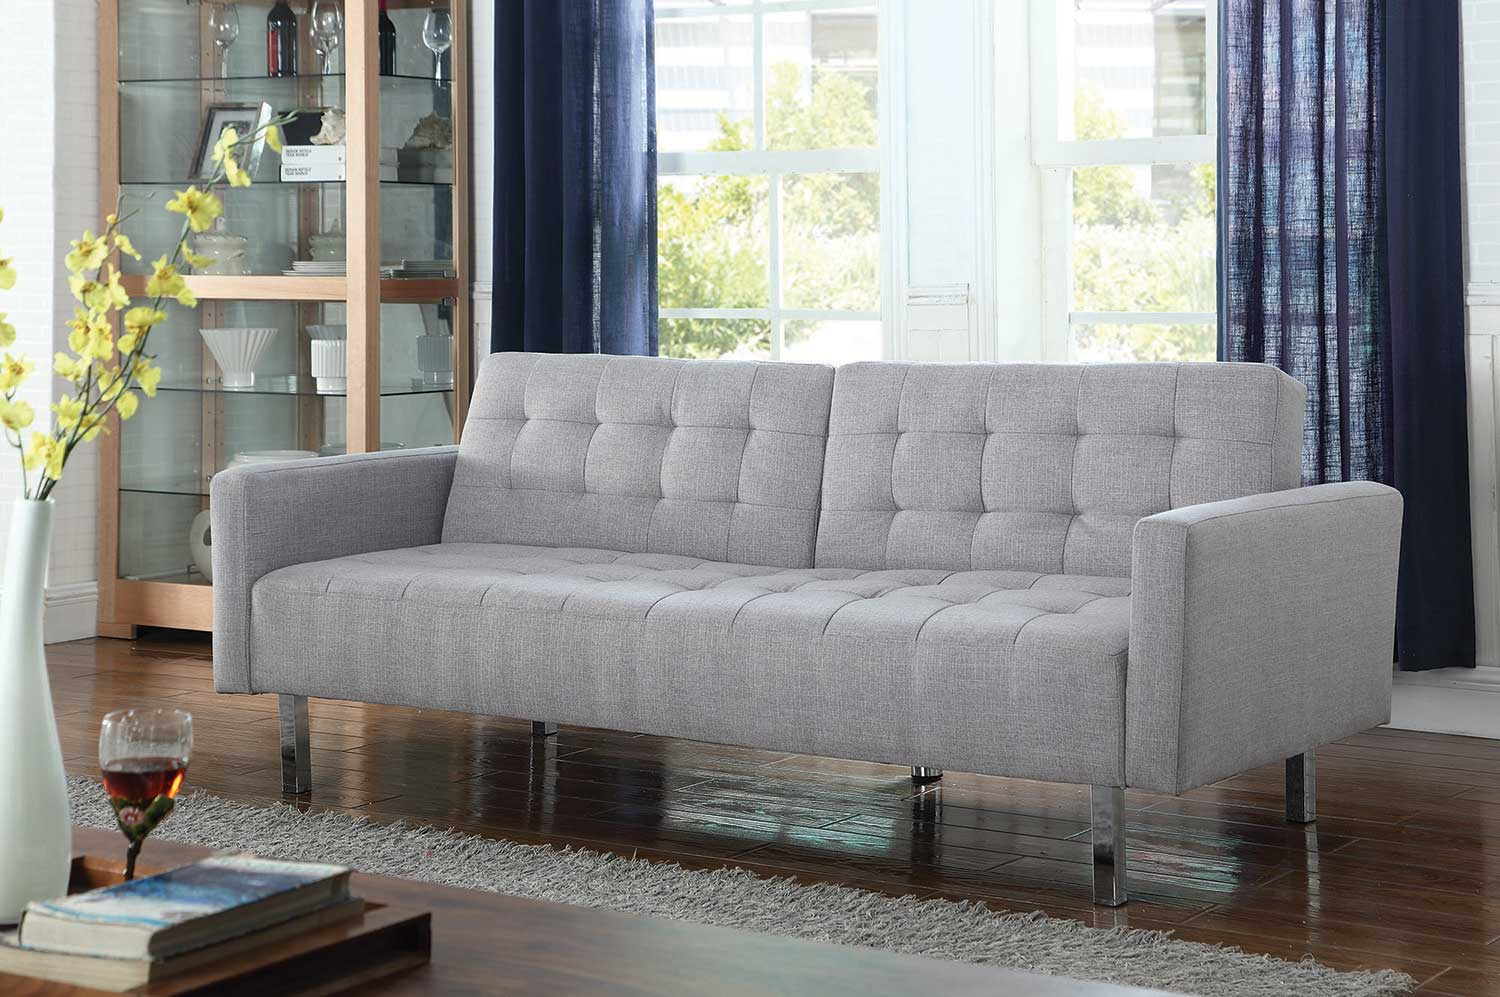 Coaster 505616 Sofa Bed - Light Grey